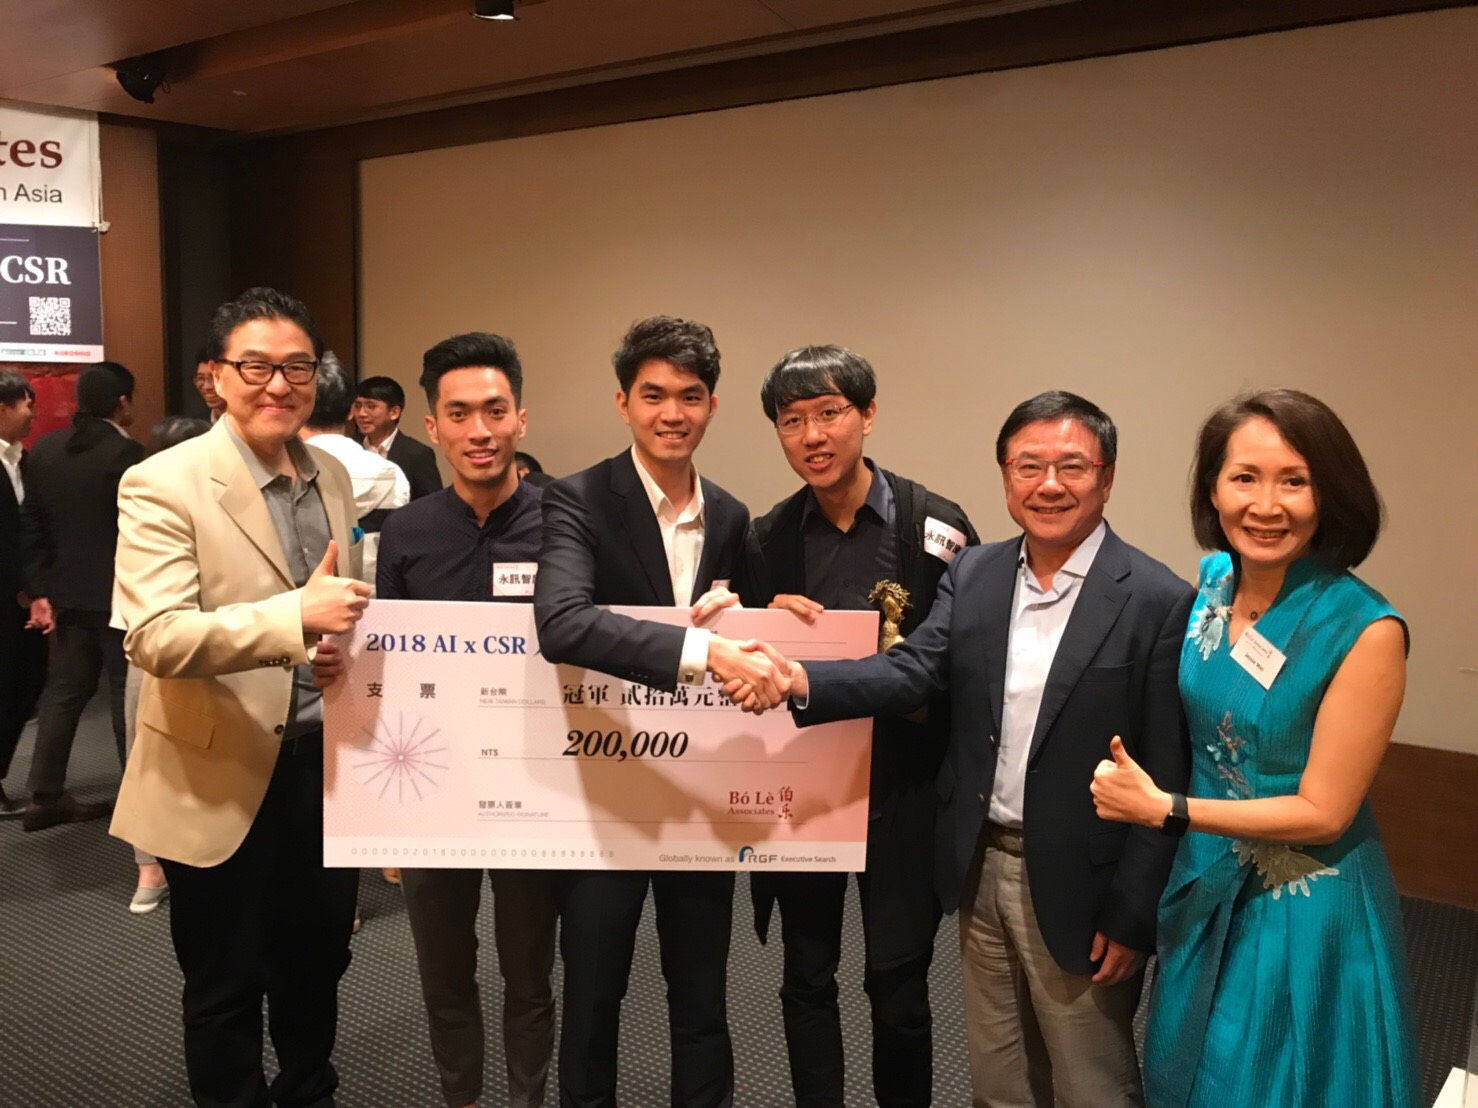 - Presenting the grand prize to the top AI project team.